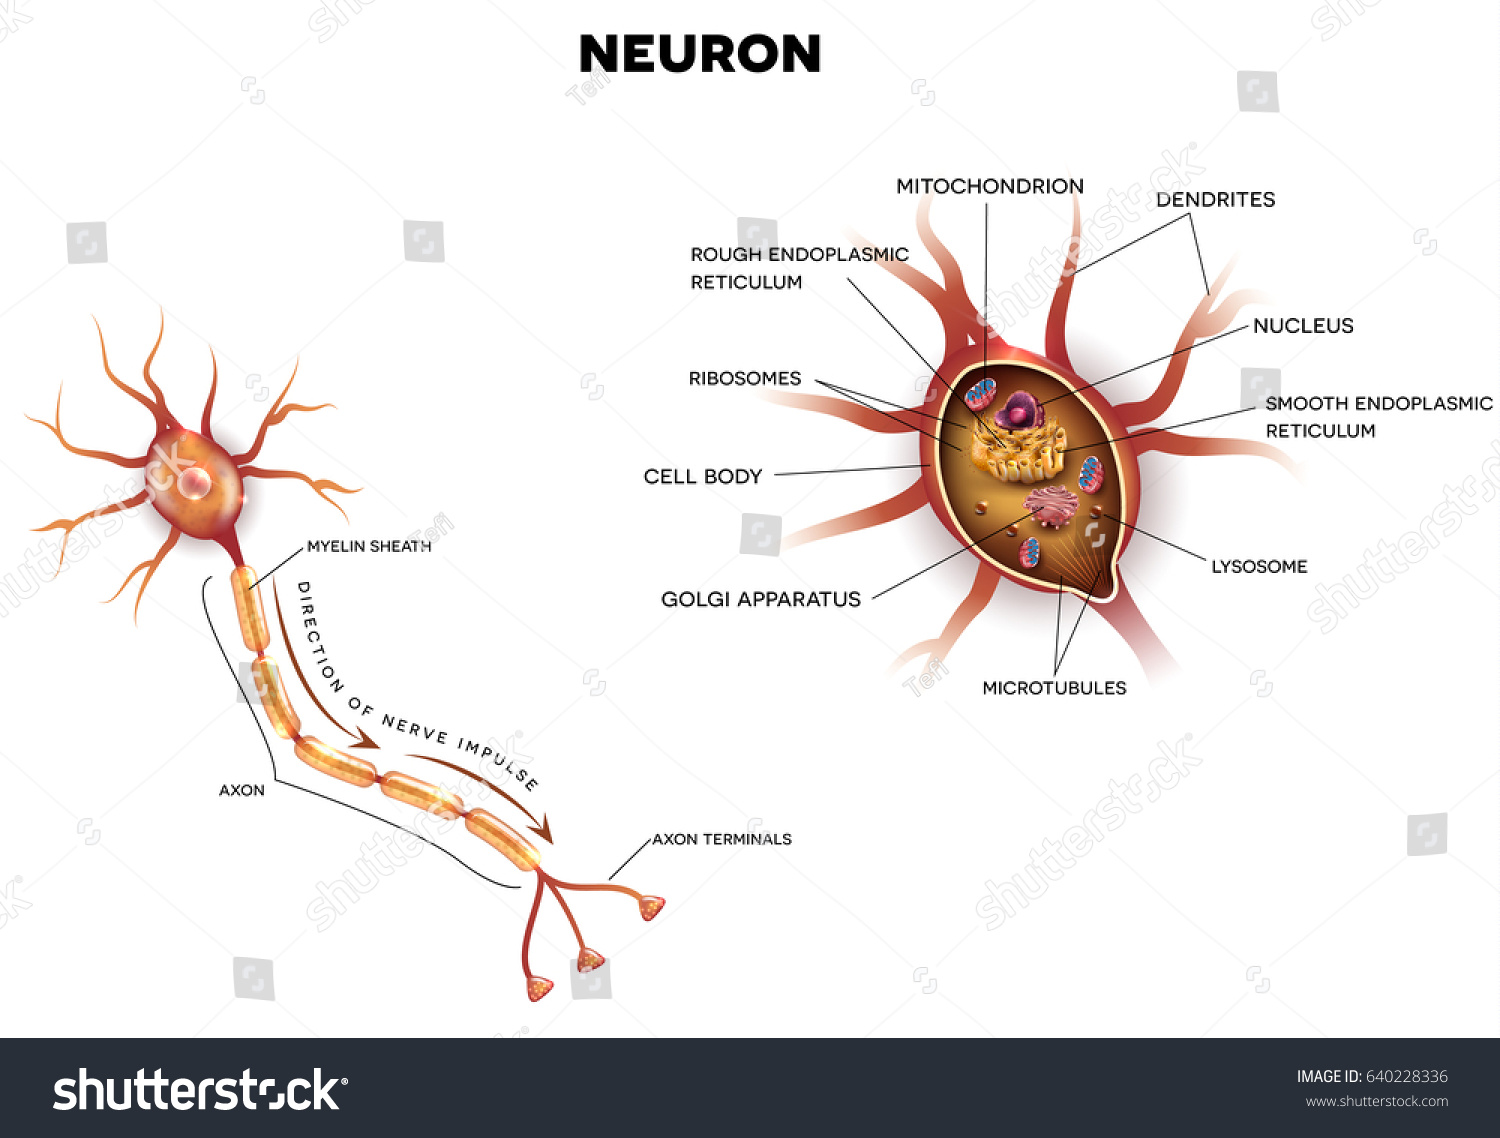 Neuron Nerve Cell That Main Part Stock Vector HD (Royalty Free ...